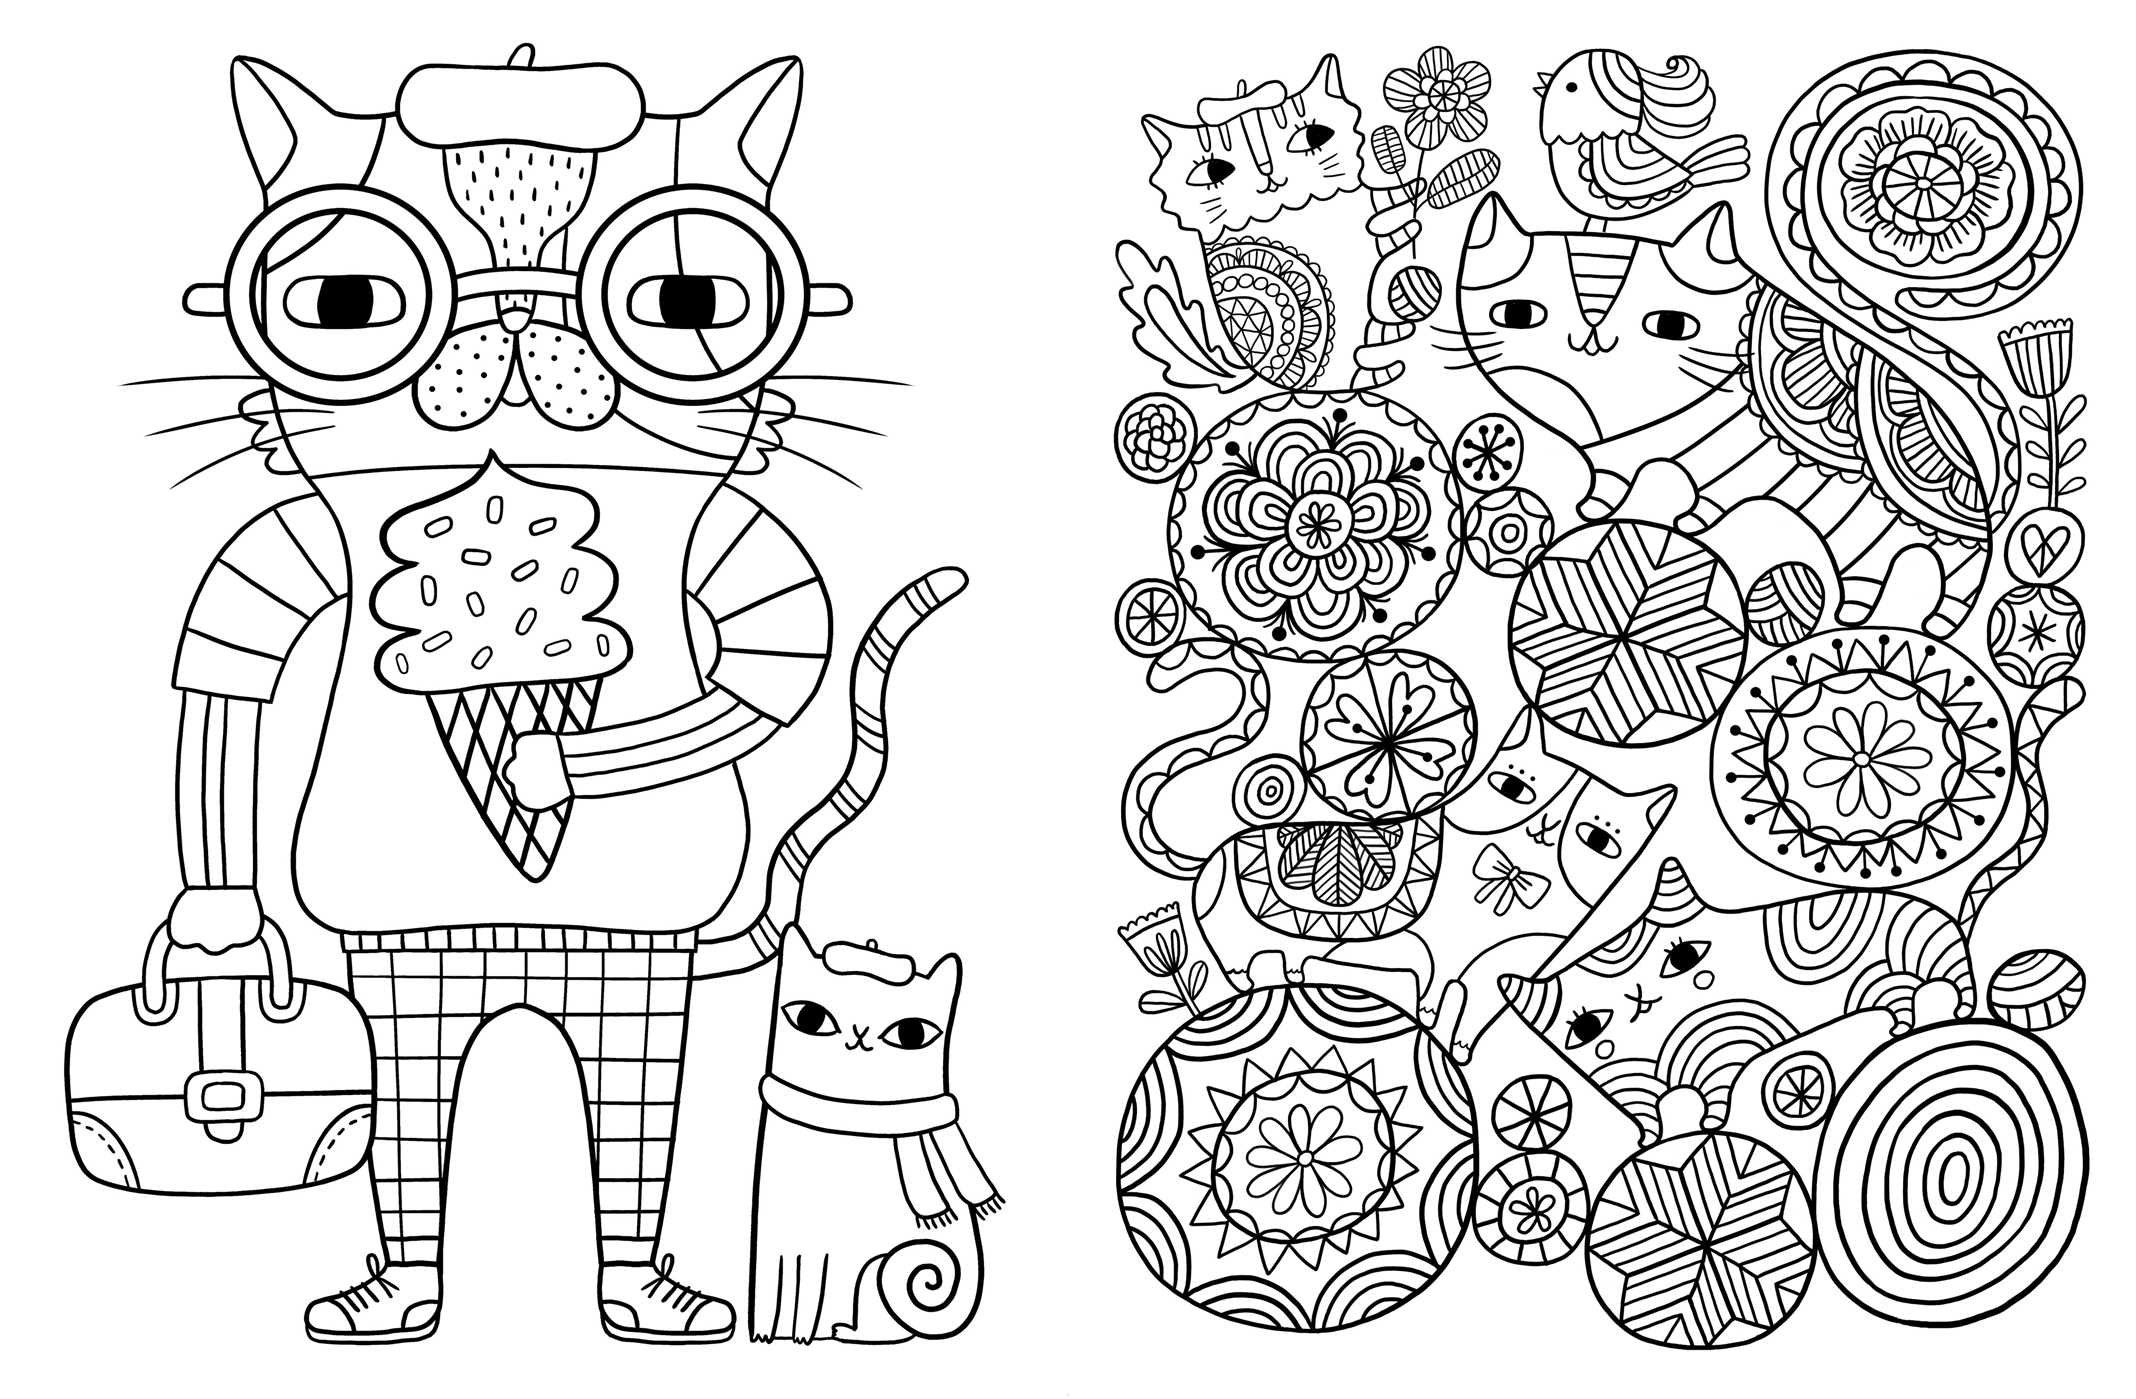 Posh Adult Coloring Book Cats Kittens for fort Creativity